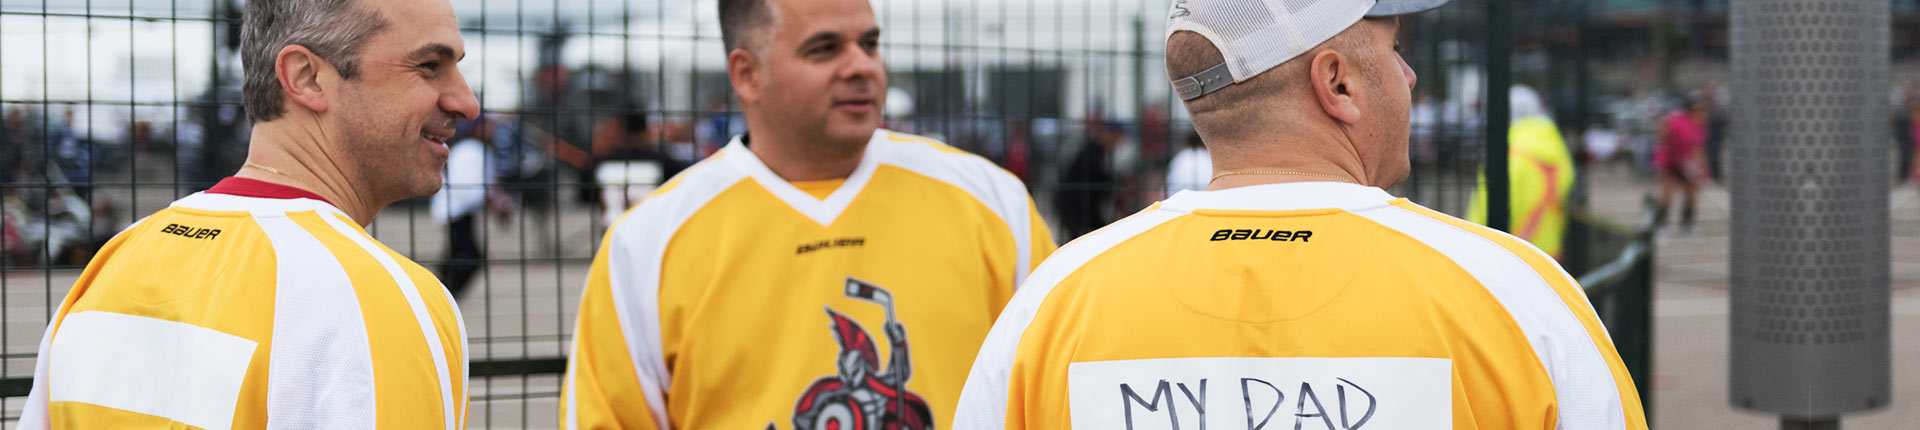 Road Hockey to Conquer Cancer - 2017 - About Cancer in Canada